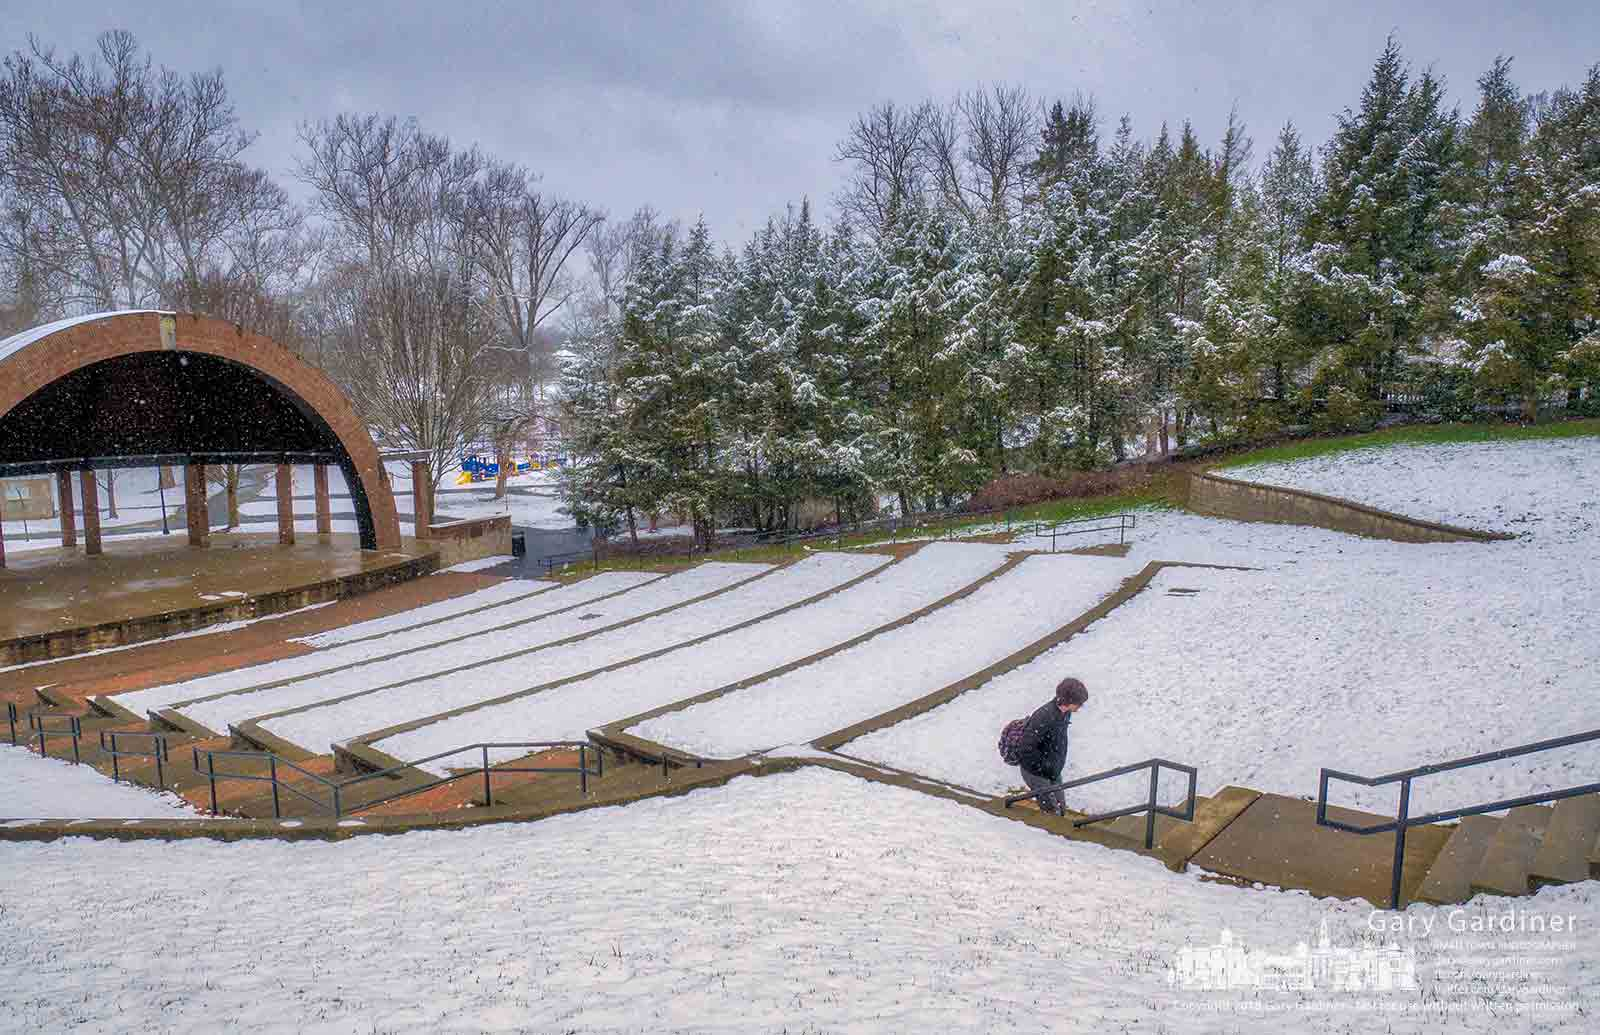 An Otterbein student walks across the snow-covered Alum Creek amphitheater on his way to a late afternoon class on the second day of Spring. My Final Photo for March 21, 2018.